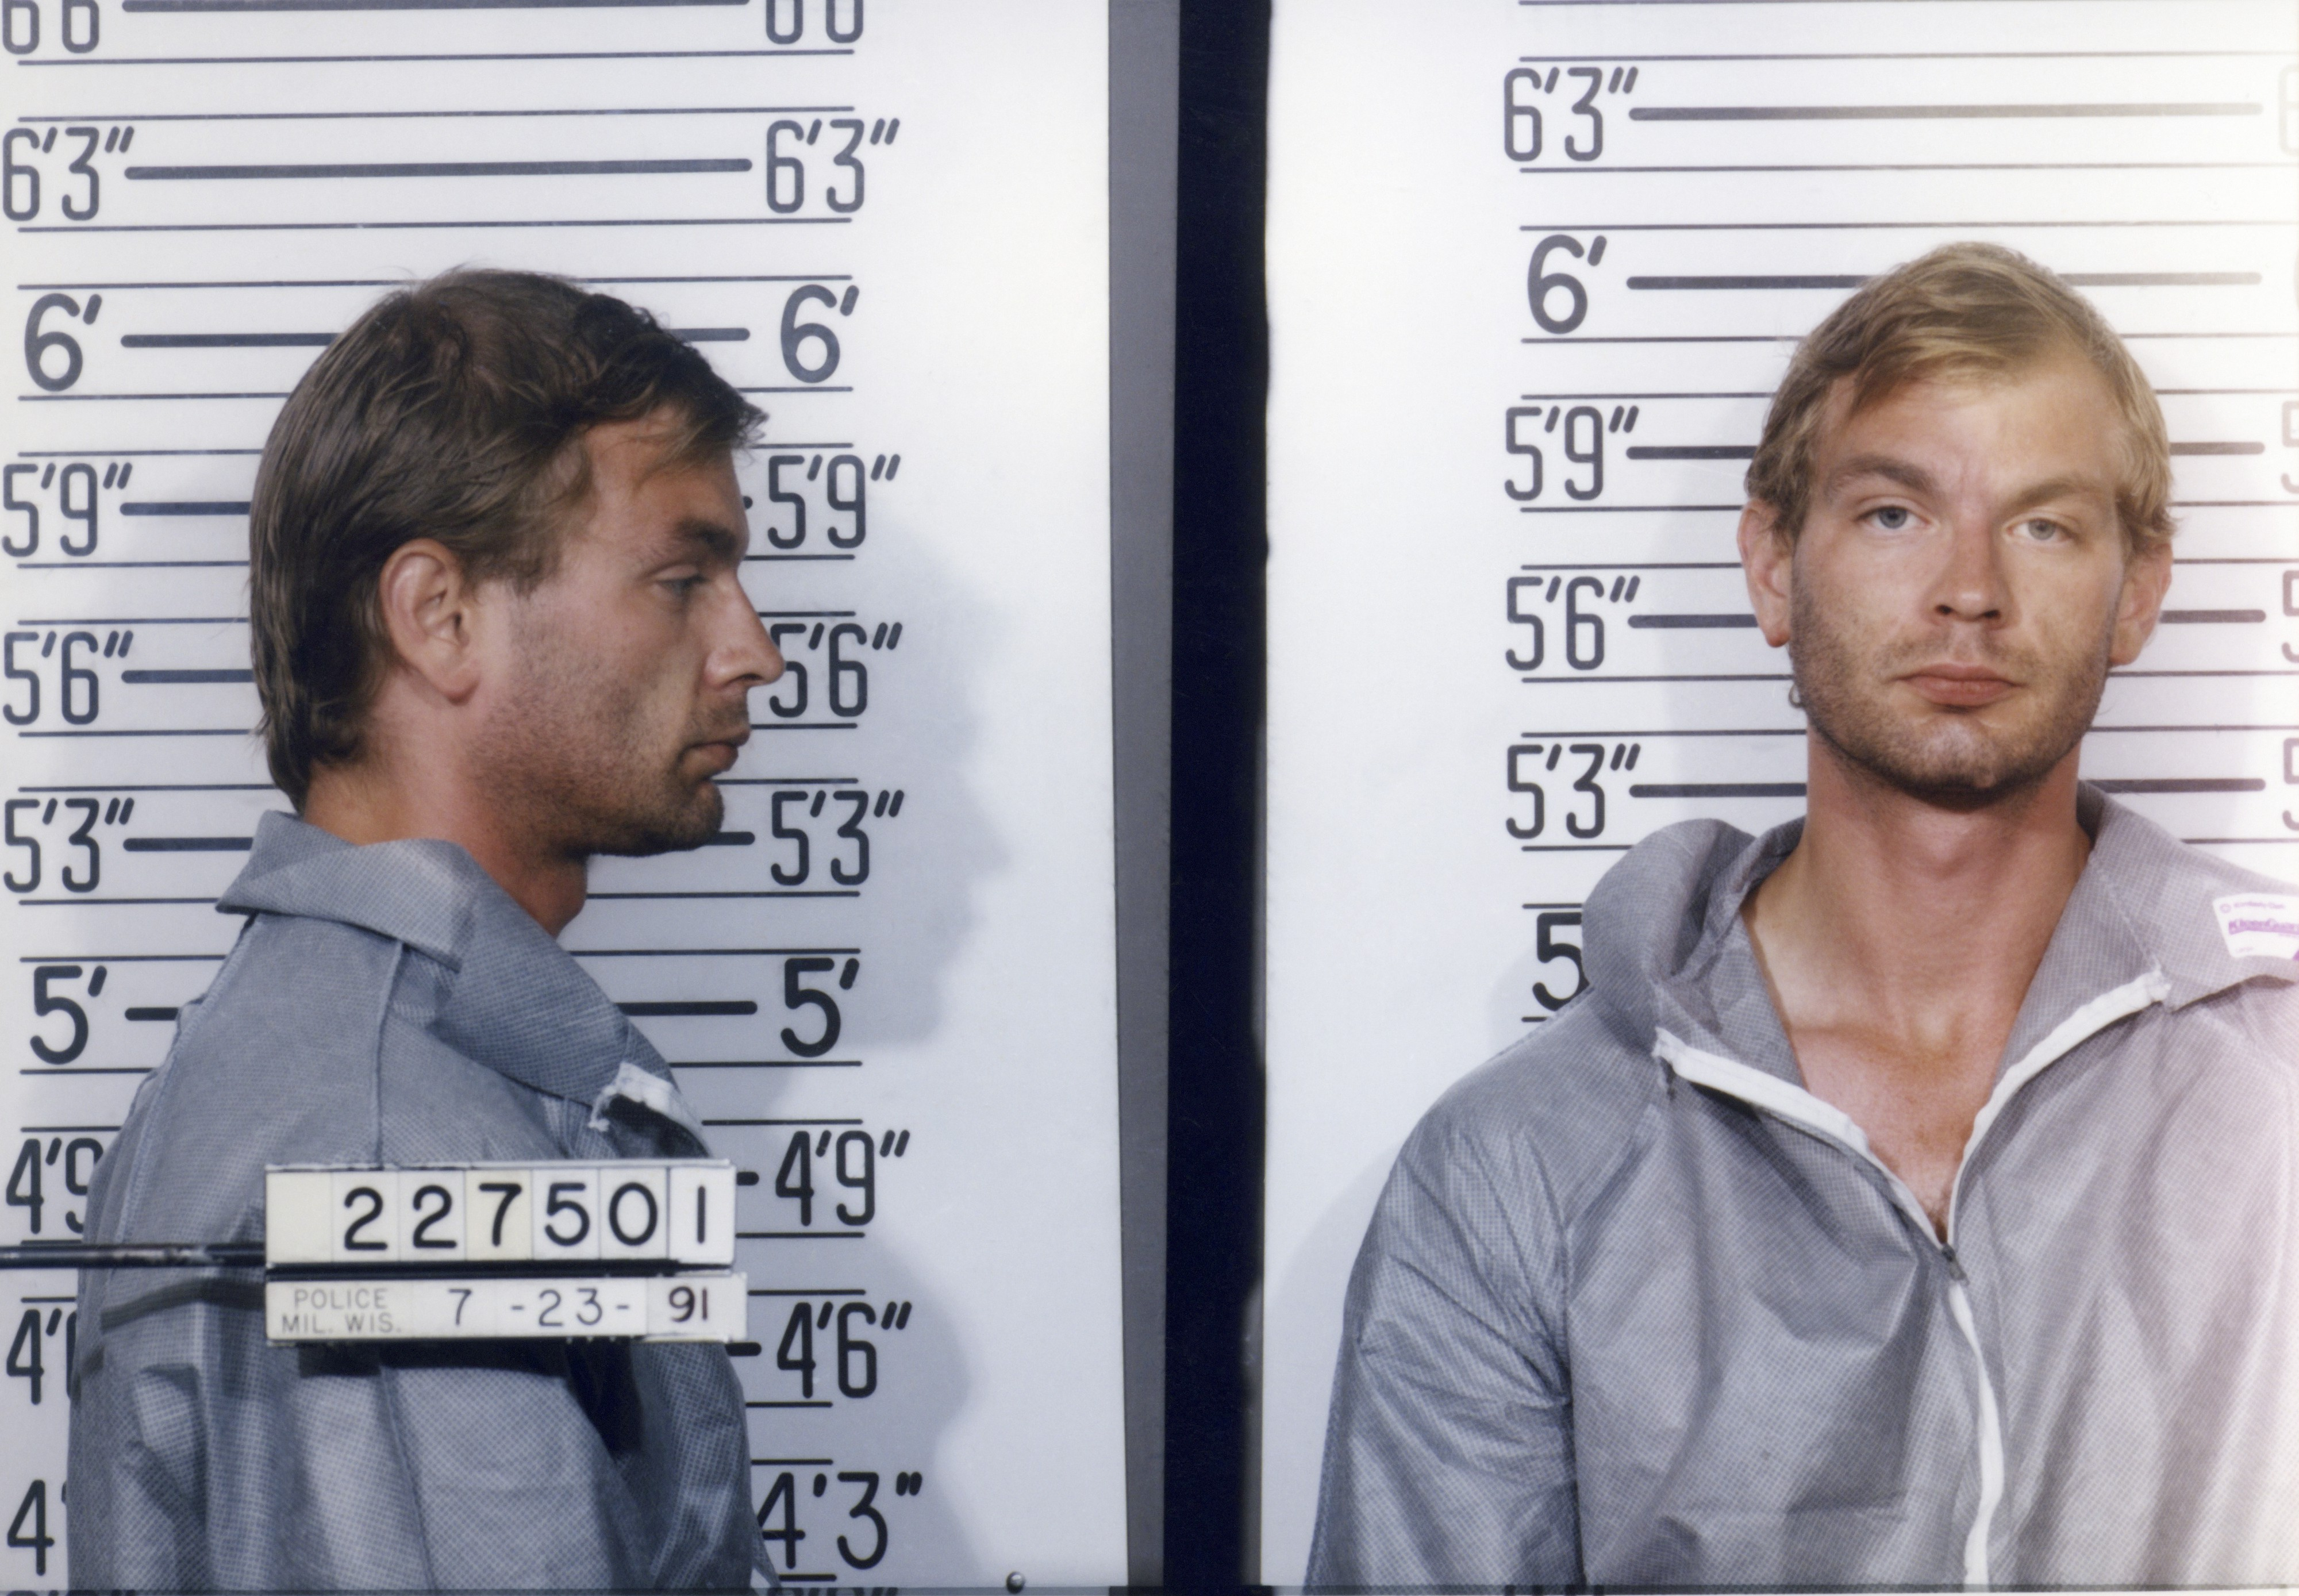 5 Ways of Looking at a Serial Killer - Damned Souls and How